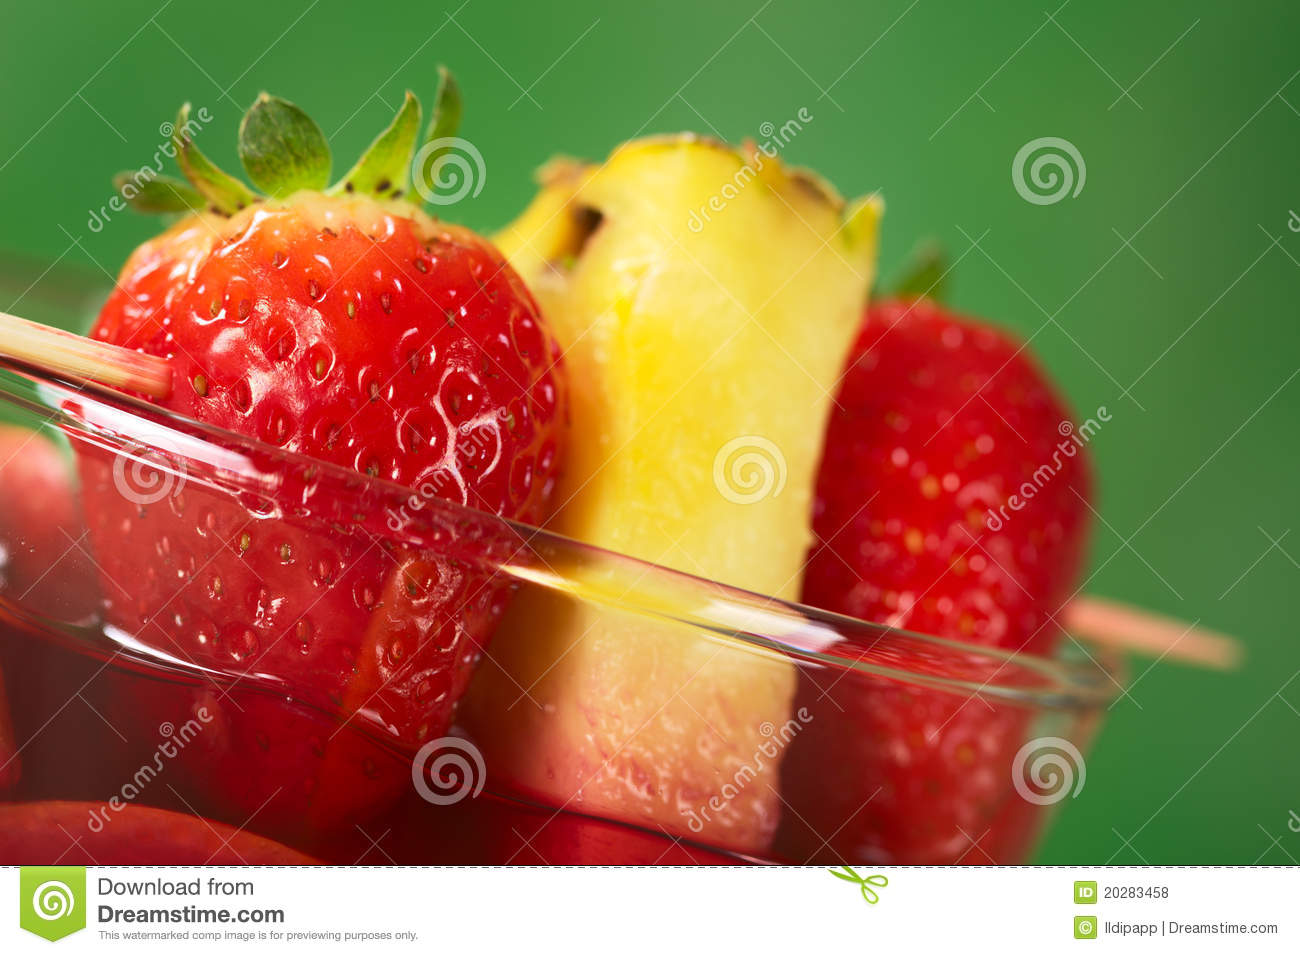 how to cut strawberries for garnish